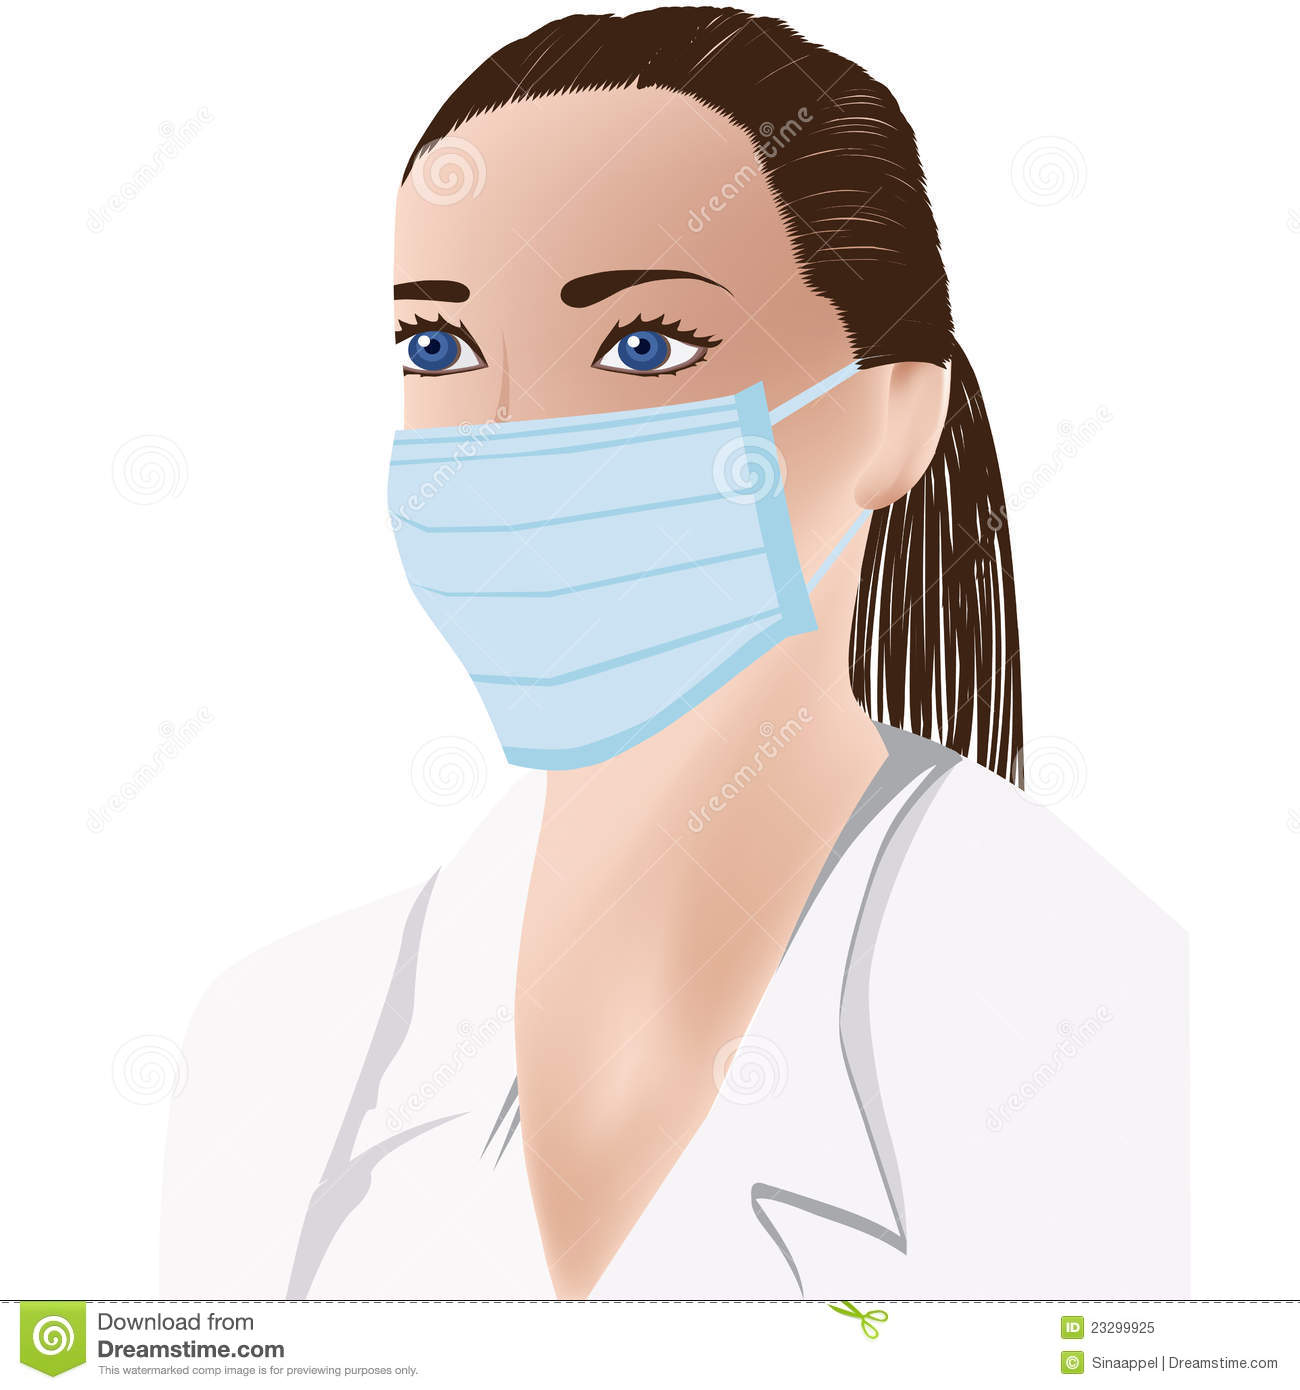 Female Doctor With Medical Mask On Face Royalty Free Stock Photo.